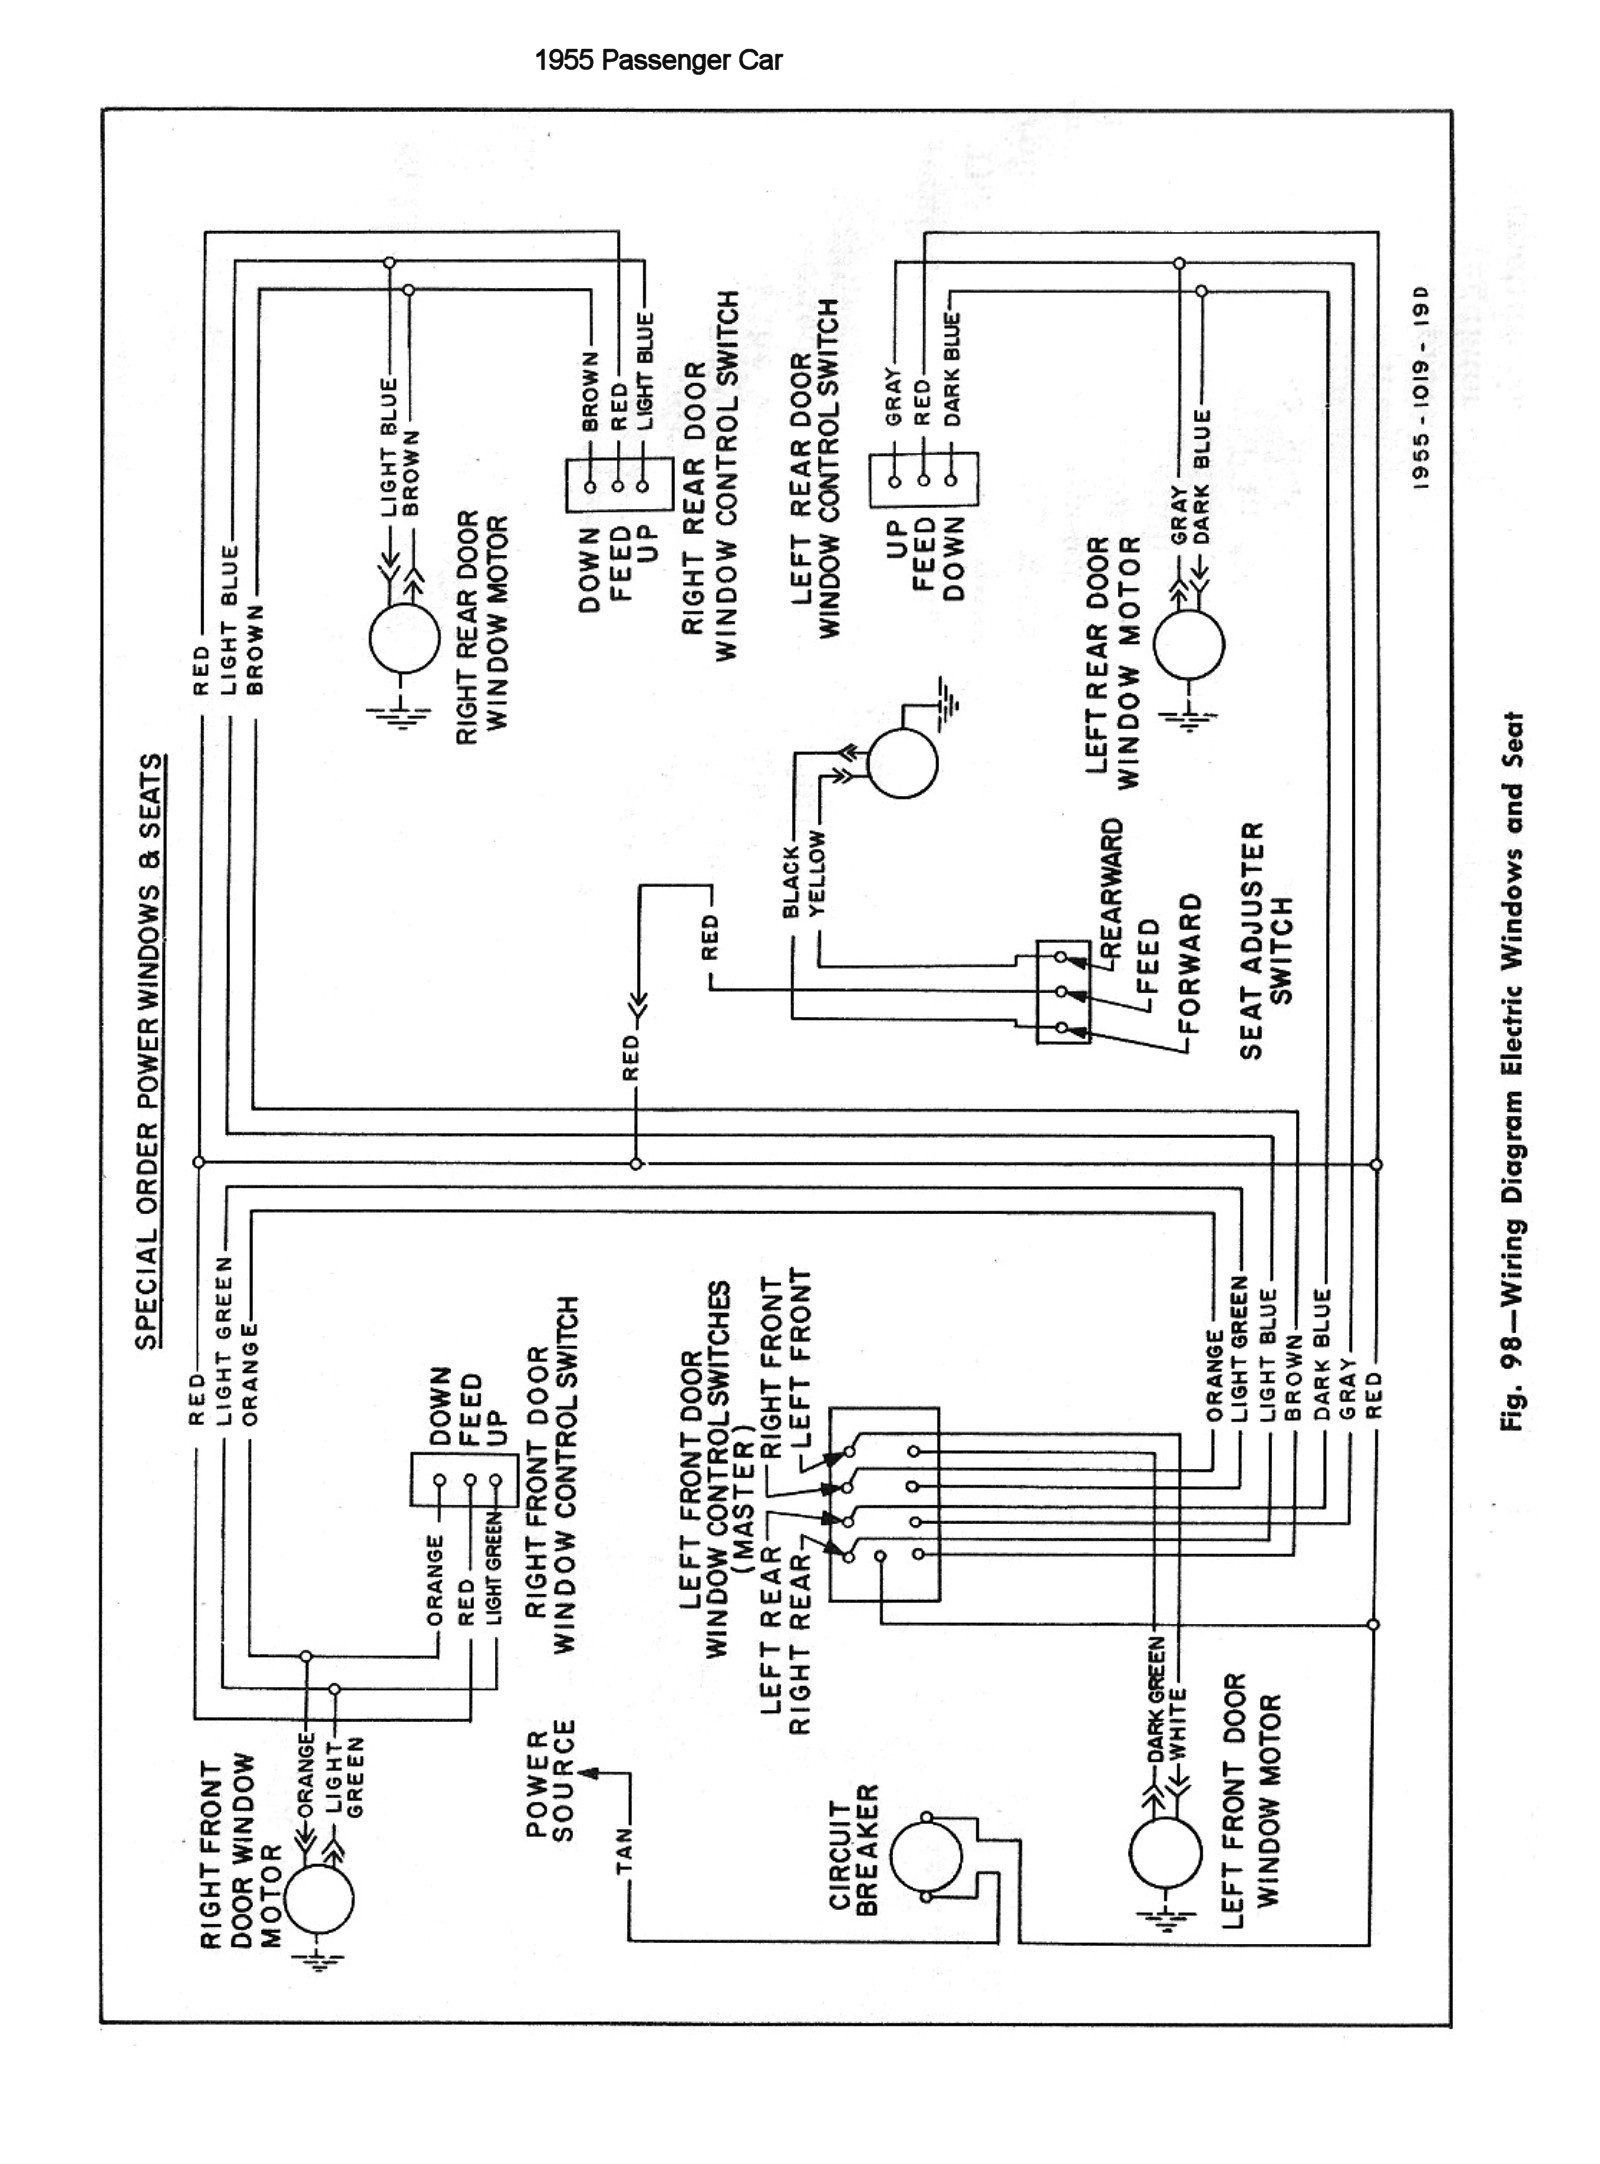 Blinker Wiring Diagram - Wiring Diagram Name on simple motorcycle wiring diagram, honda cb750 ignition wiring diagram, harley rear turn signal wiring, harley turn signal relay location, turn signal switch diagram, ezgo brake light wiring diagram, signal light wiring diagram, harley turn signal relocation kit, harley turn signal assembly, harley turn signal parts, turn signal relay diagram, harley davidson wiring diagrams online, harley led turn signal mirror, harley turn signal module location, easy go wiring diagram, simple chopper wiring diagram, 3 wire led light wiring diagram, simple turn signal diagram, jeep cj7 ignition wiring diagram, triumph motorcycle wiring diagram,